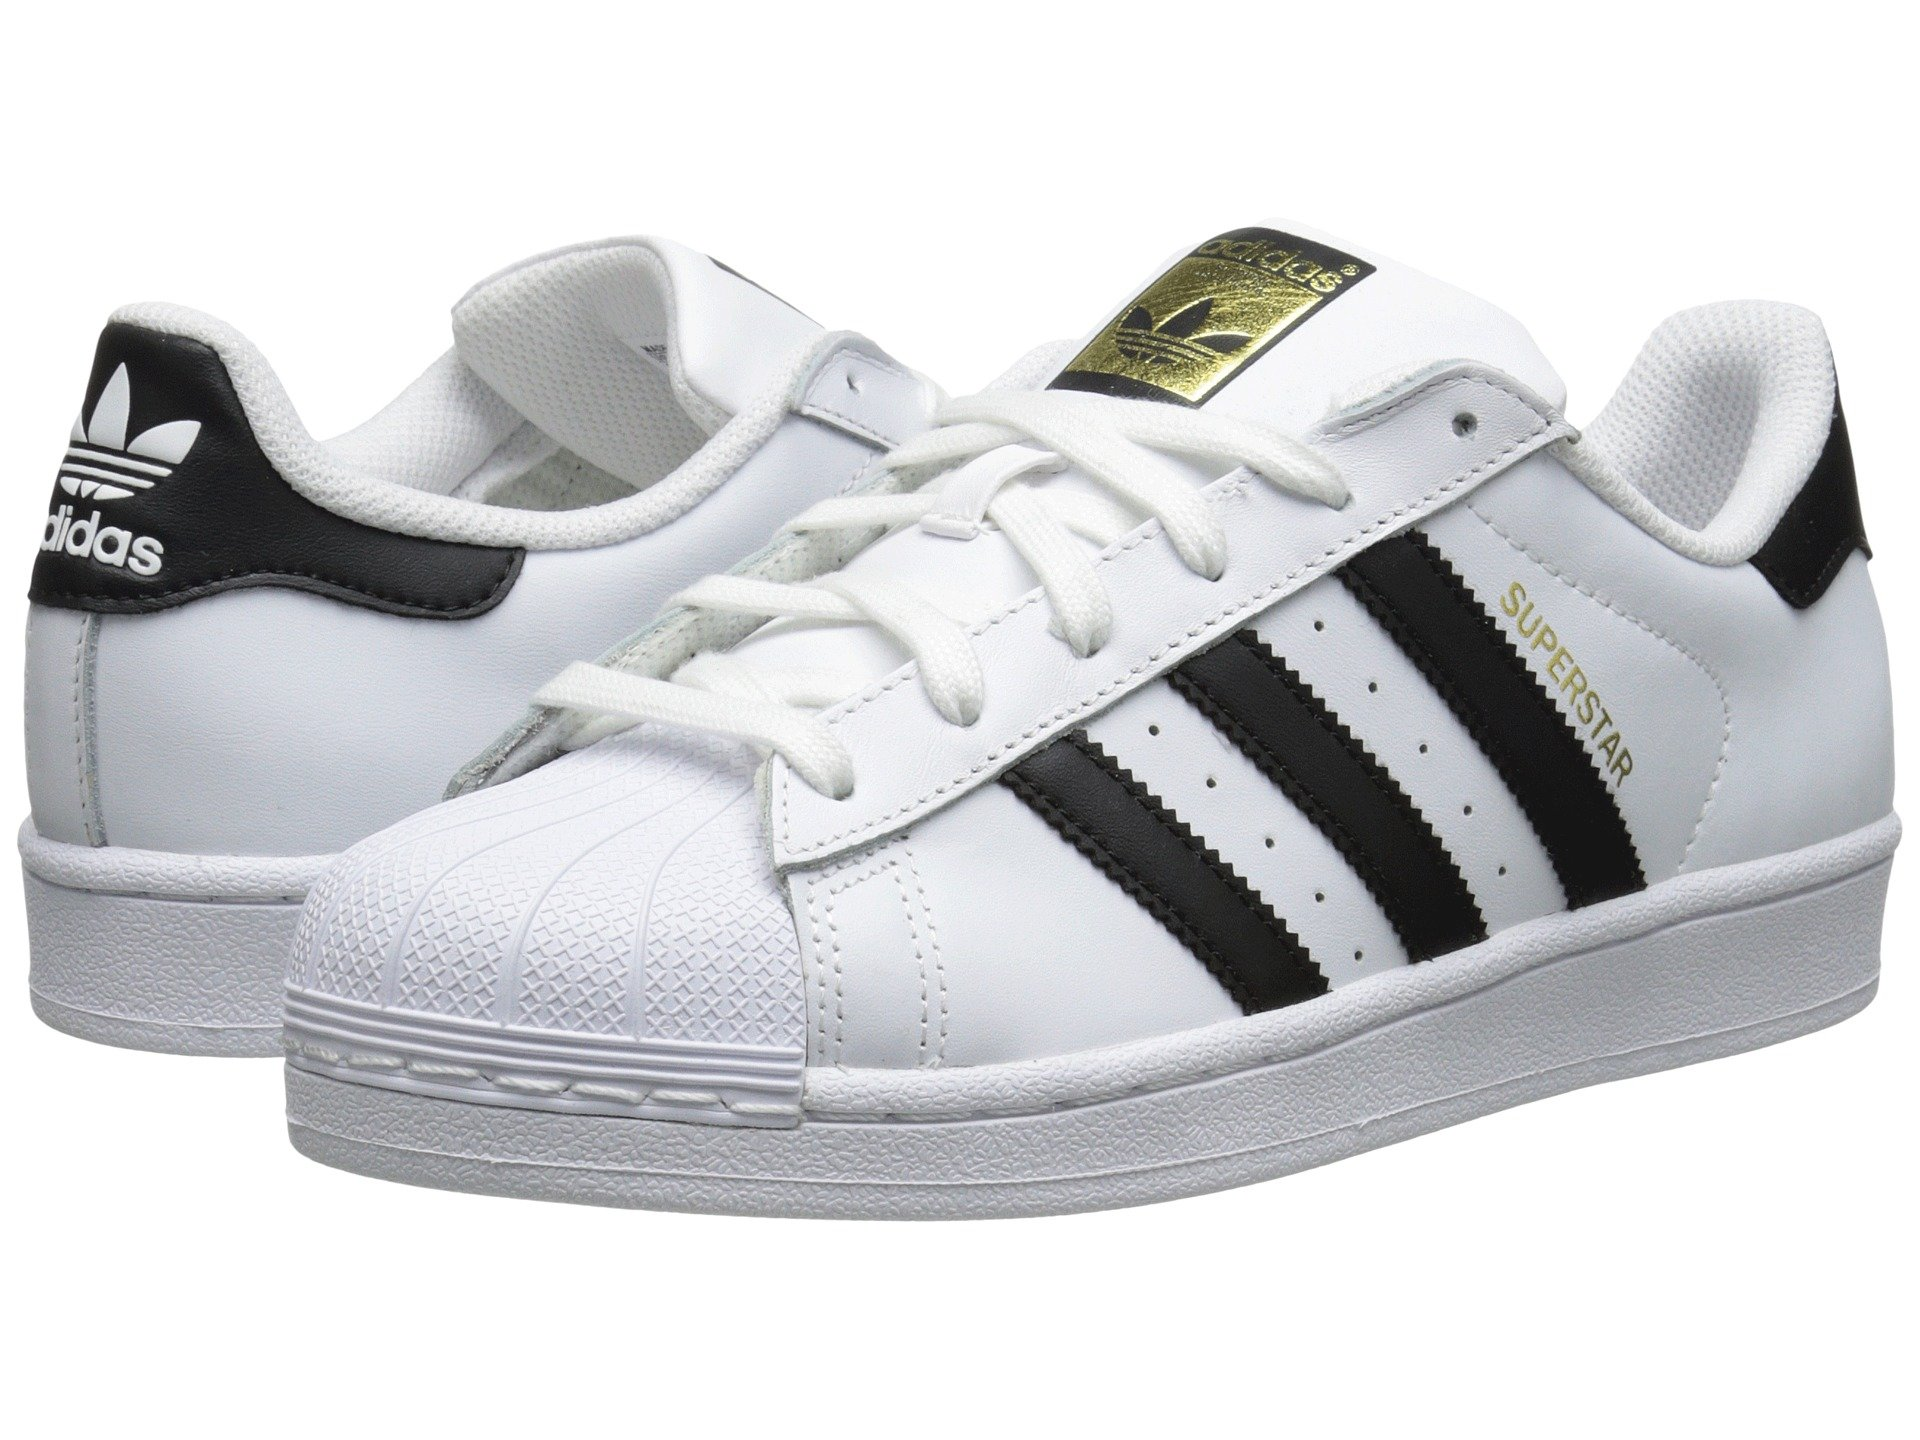 Women Adidas Originals Superstar Shoes White Sch N3r3f : Up